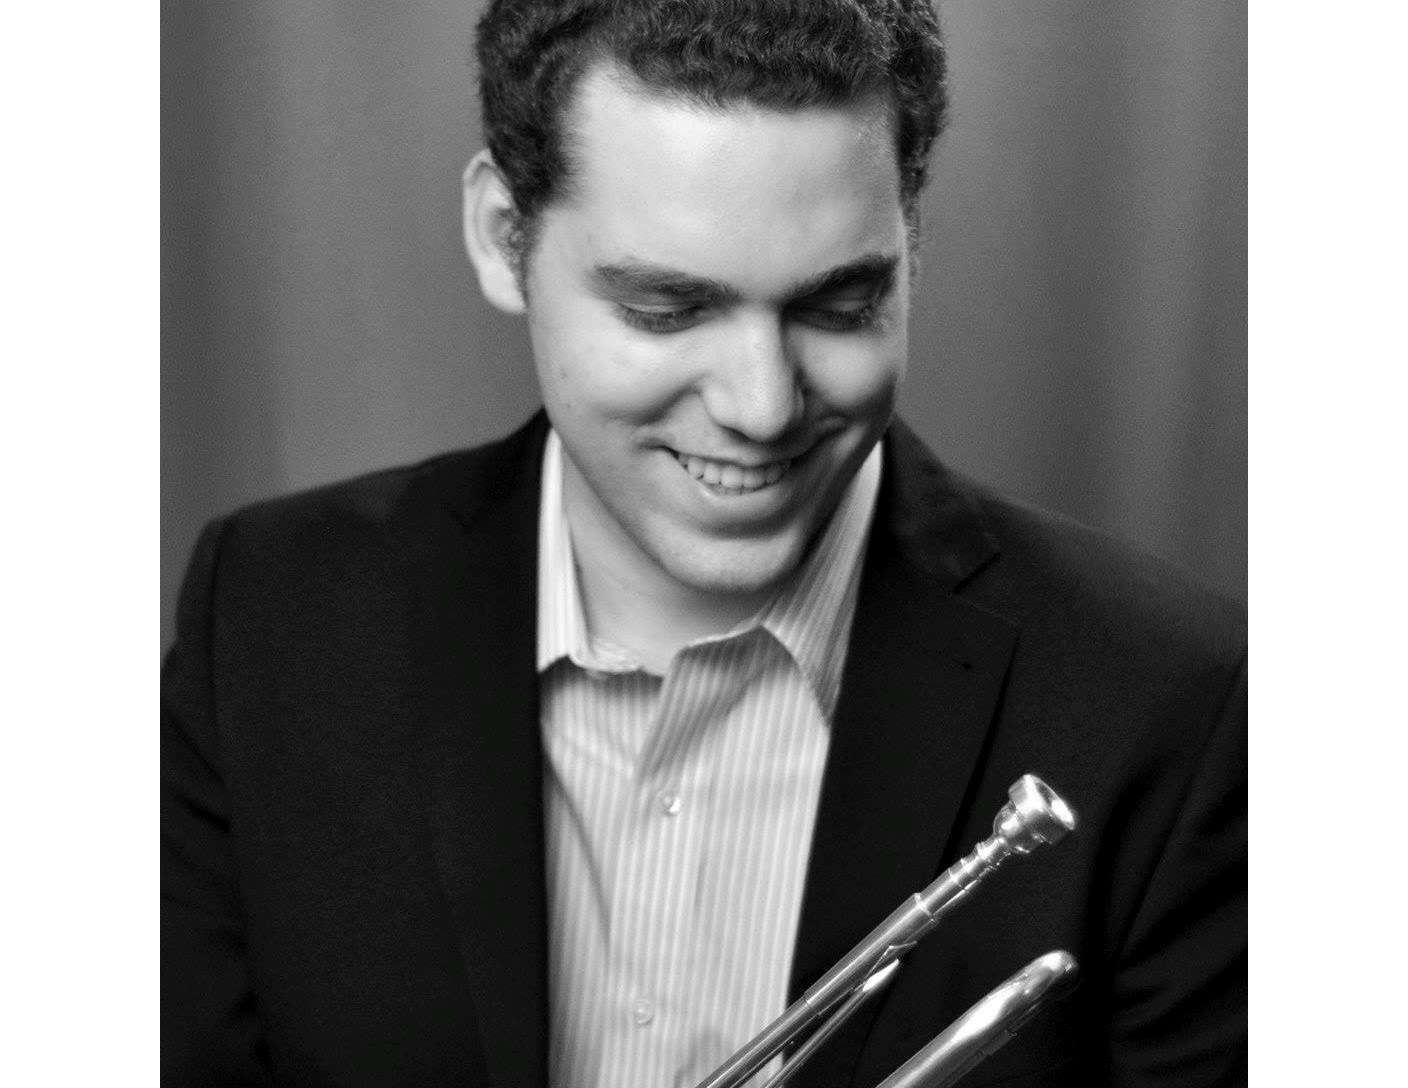 Davide Da Silva photo with trumpet